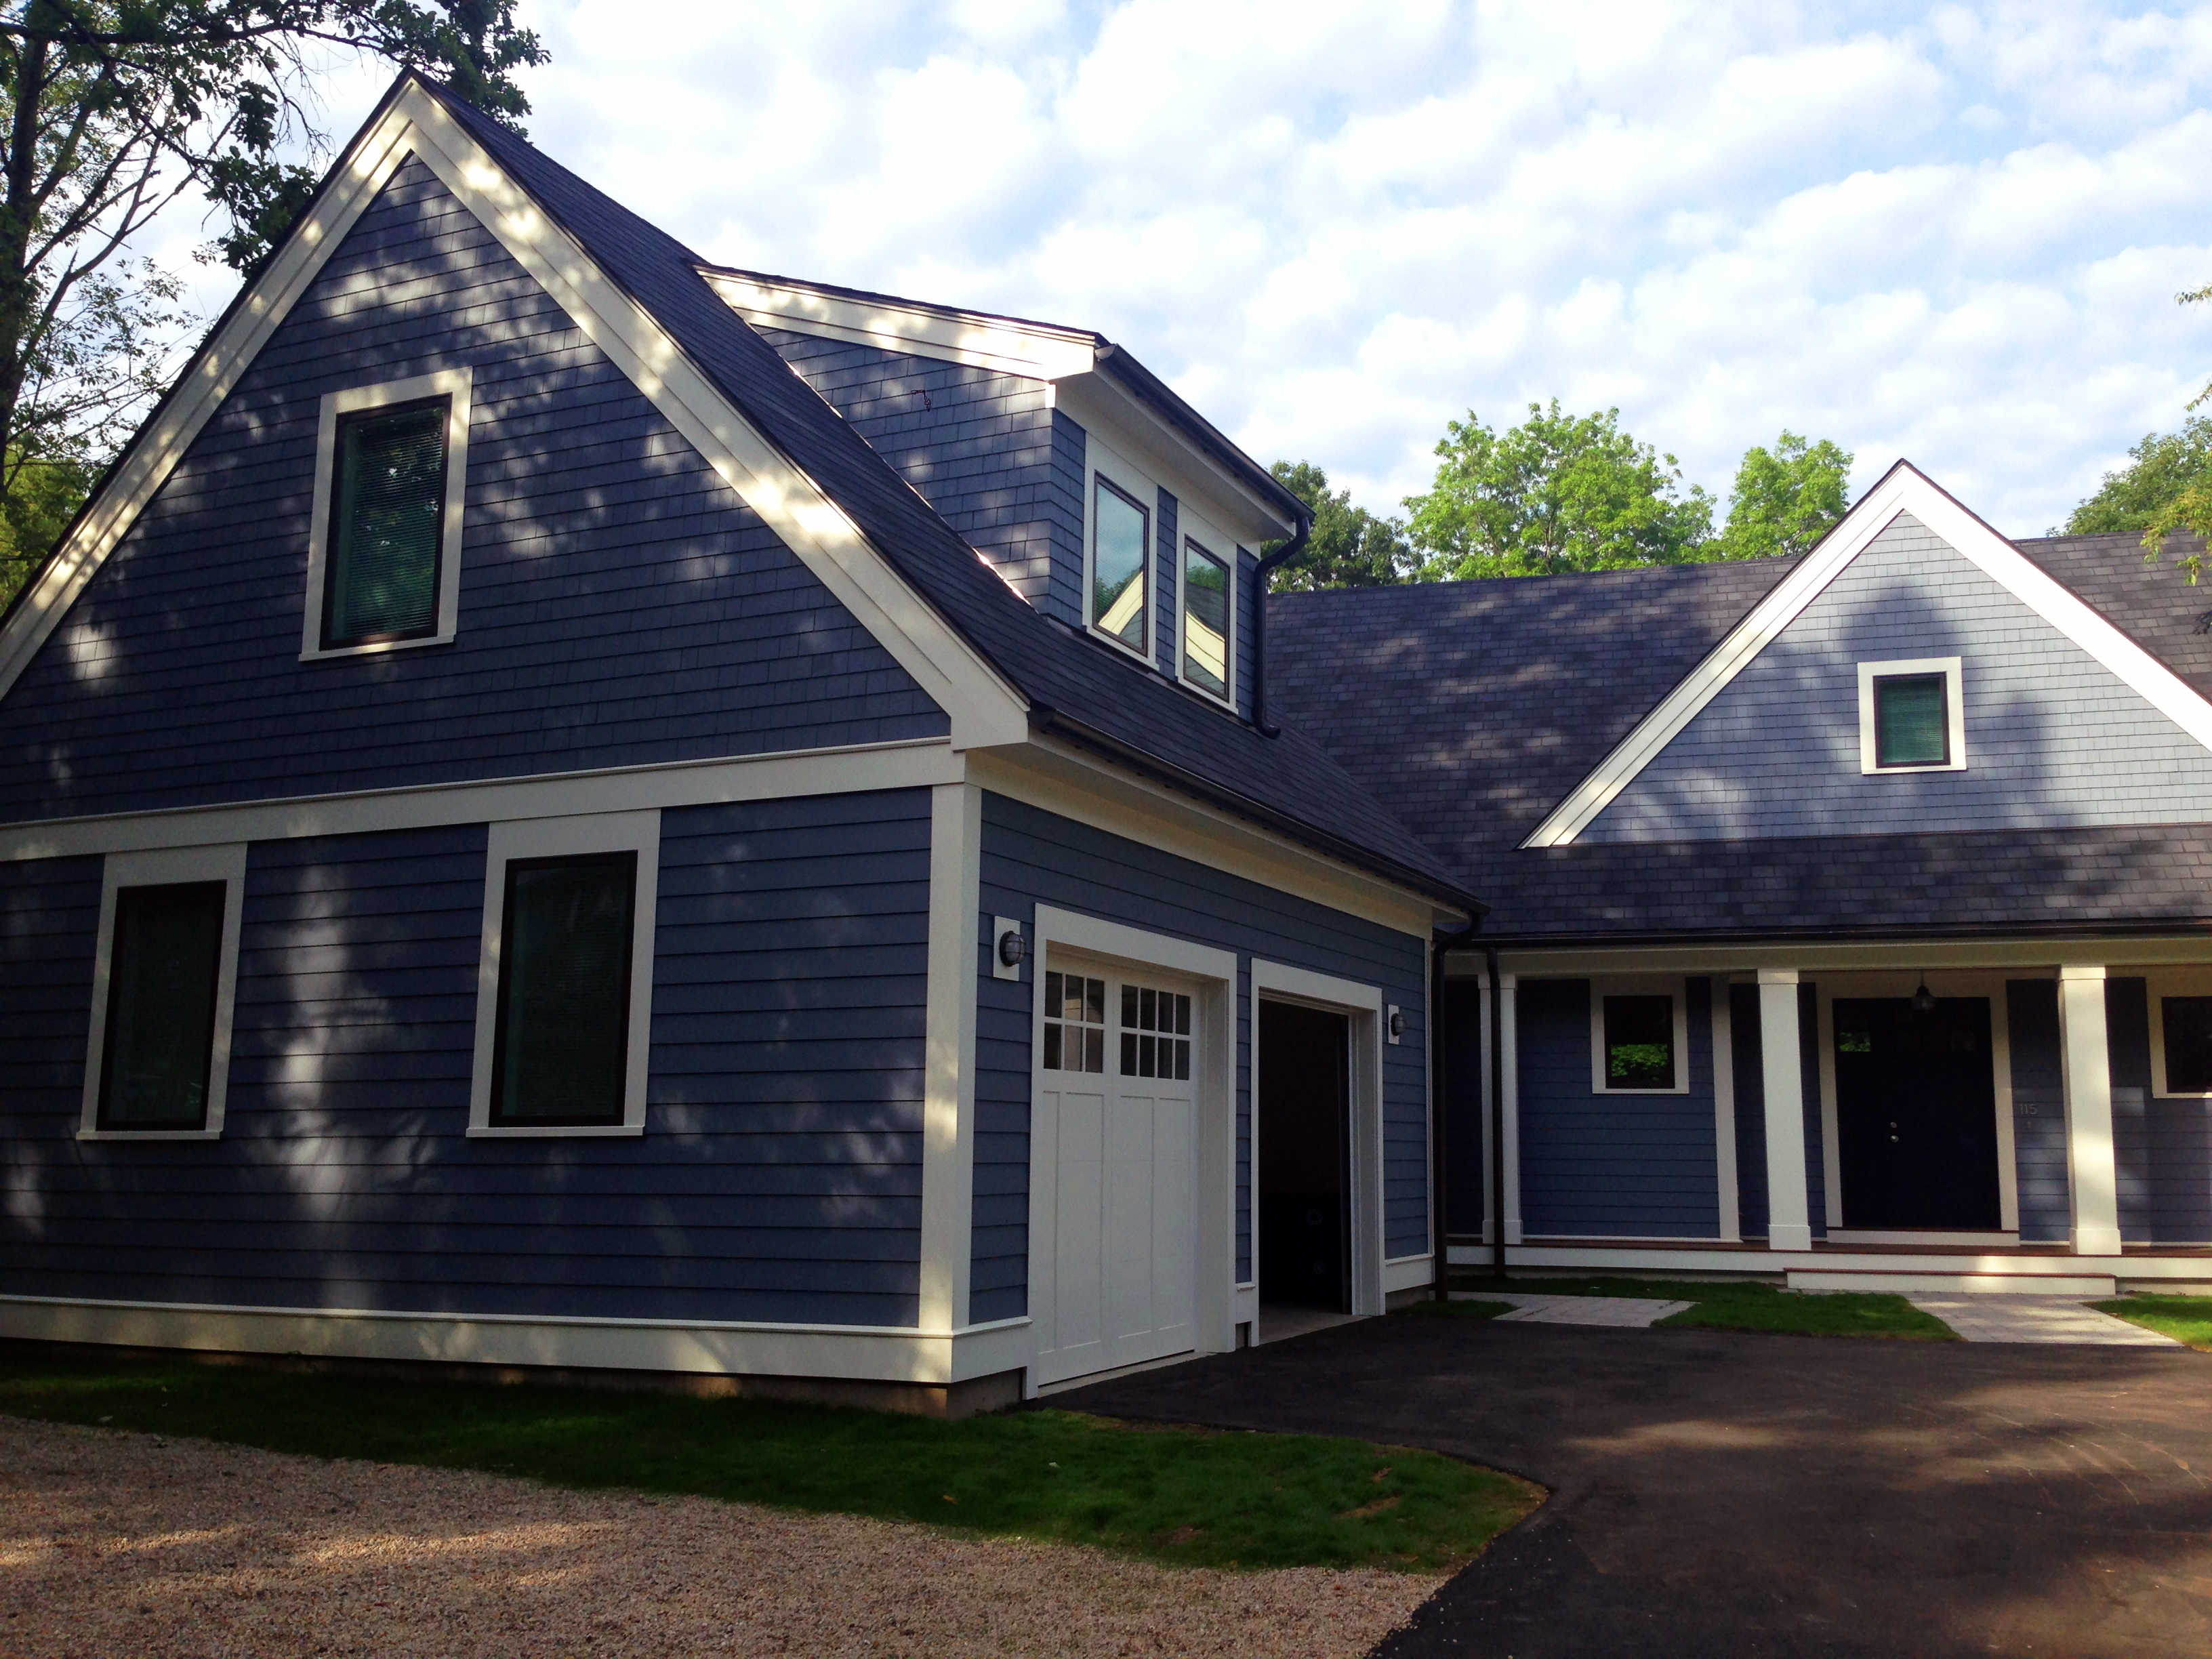 arlington ma residential exterior painting project smart coats